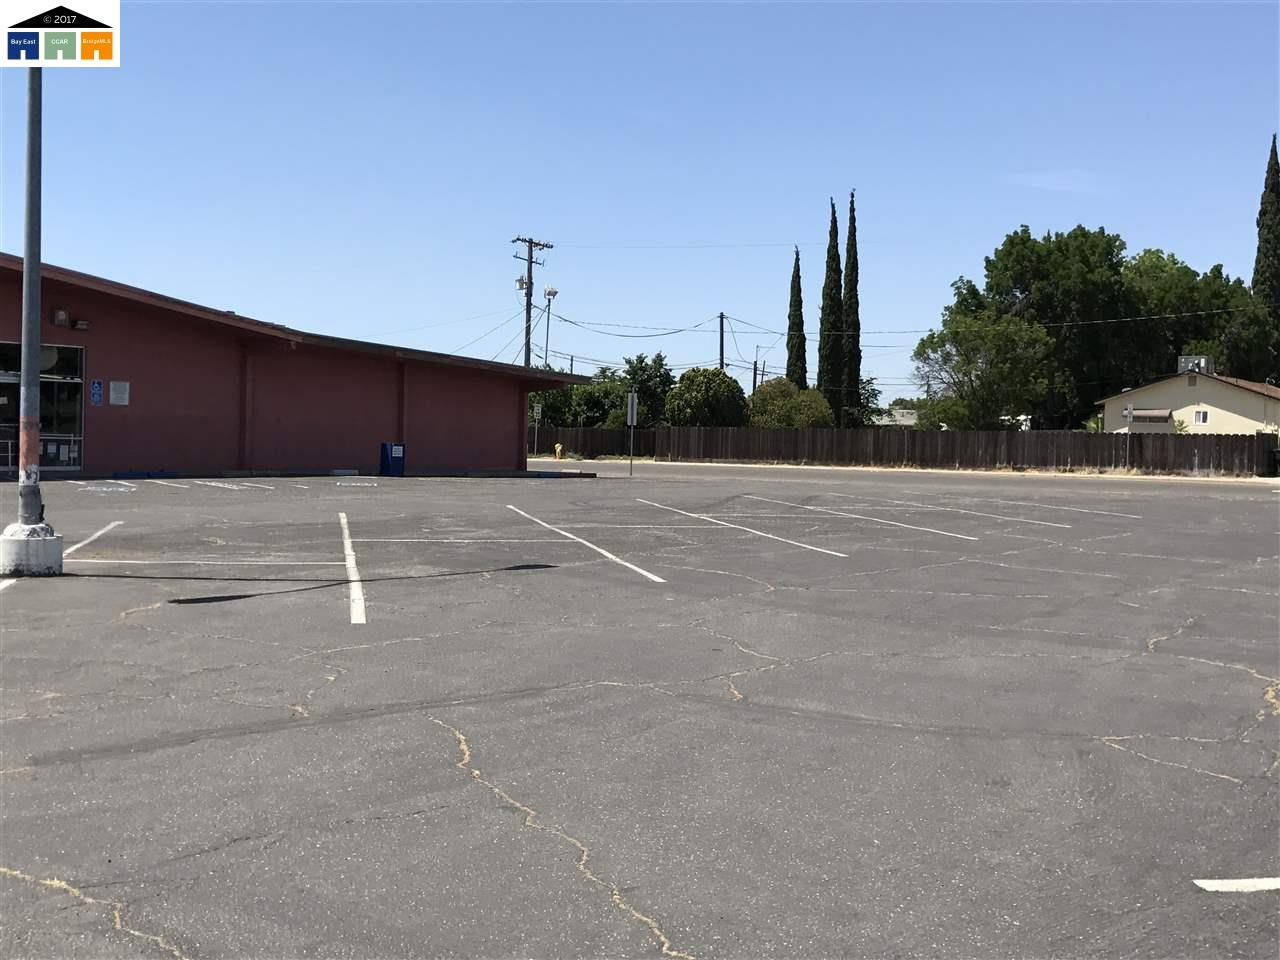 Additional photo for property listing at 1724 main street 1724 main street Livingston, California 95334 Estados Unidos